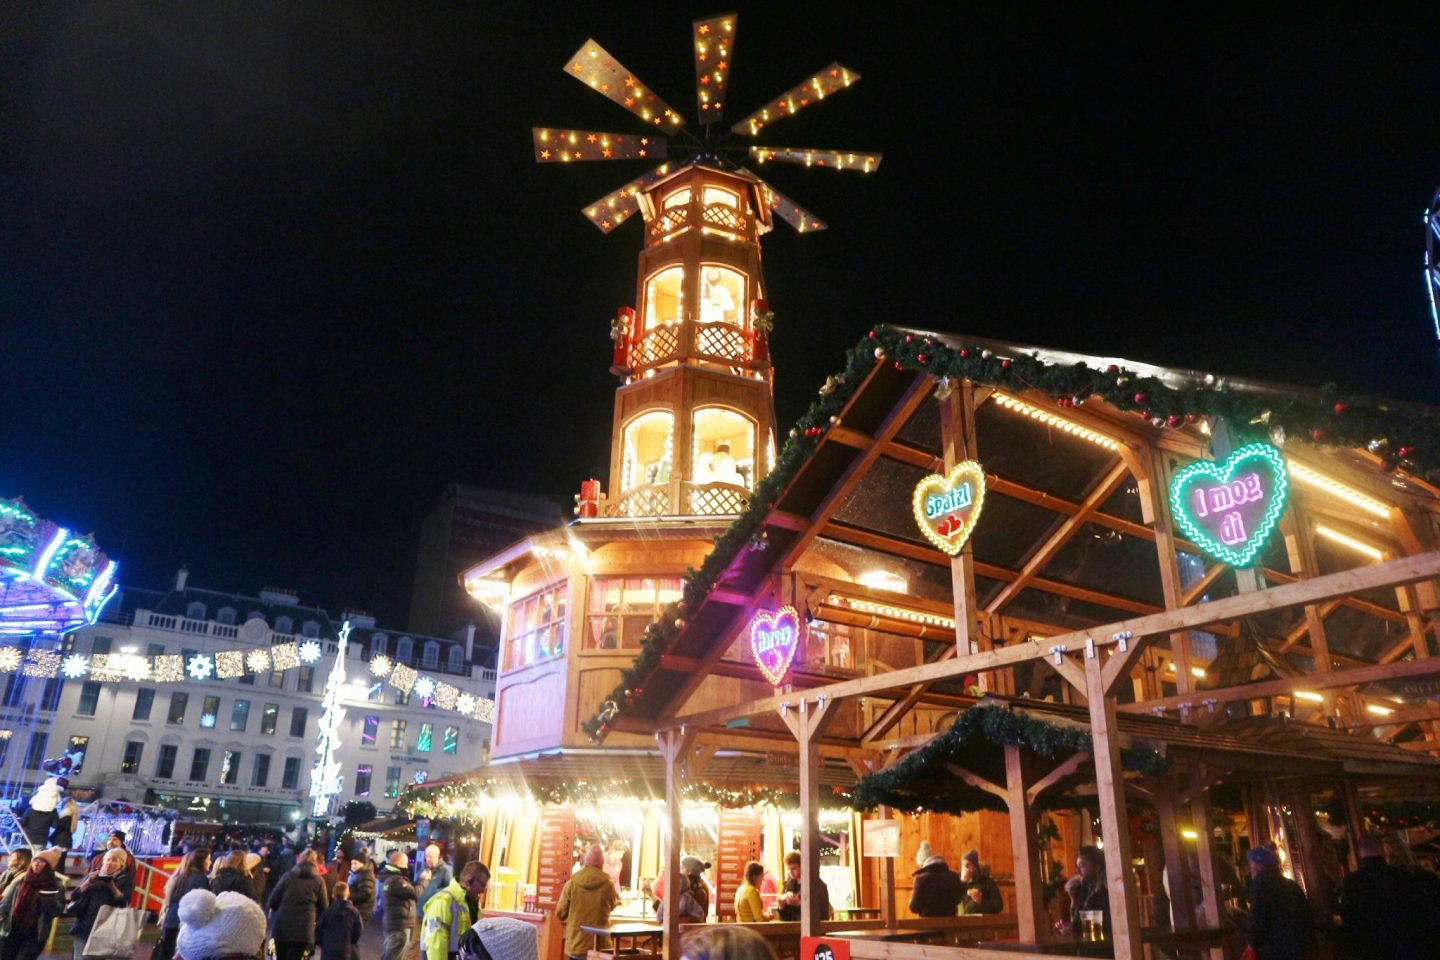 glasgow christmas market at night